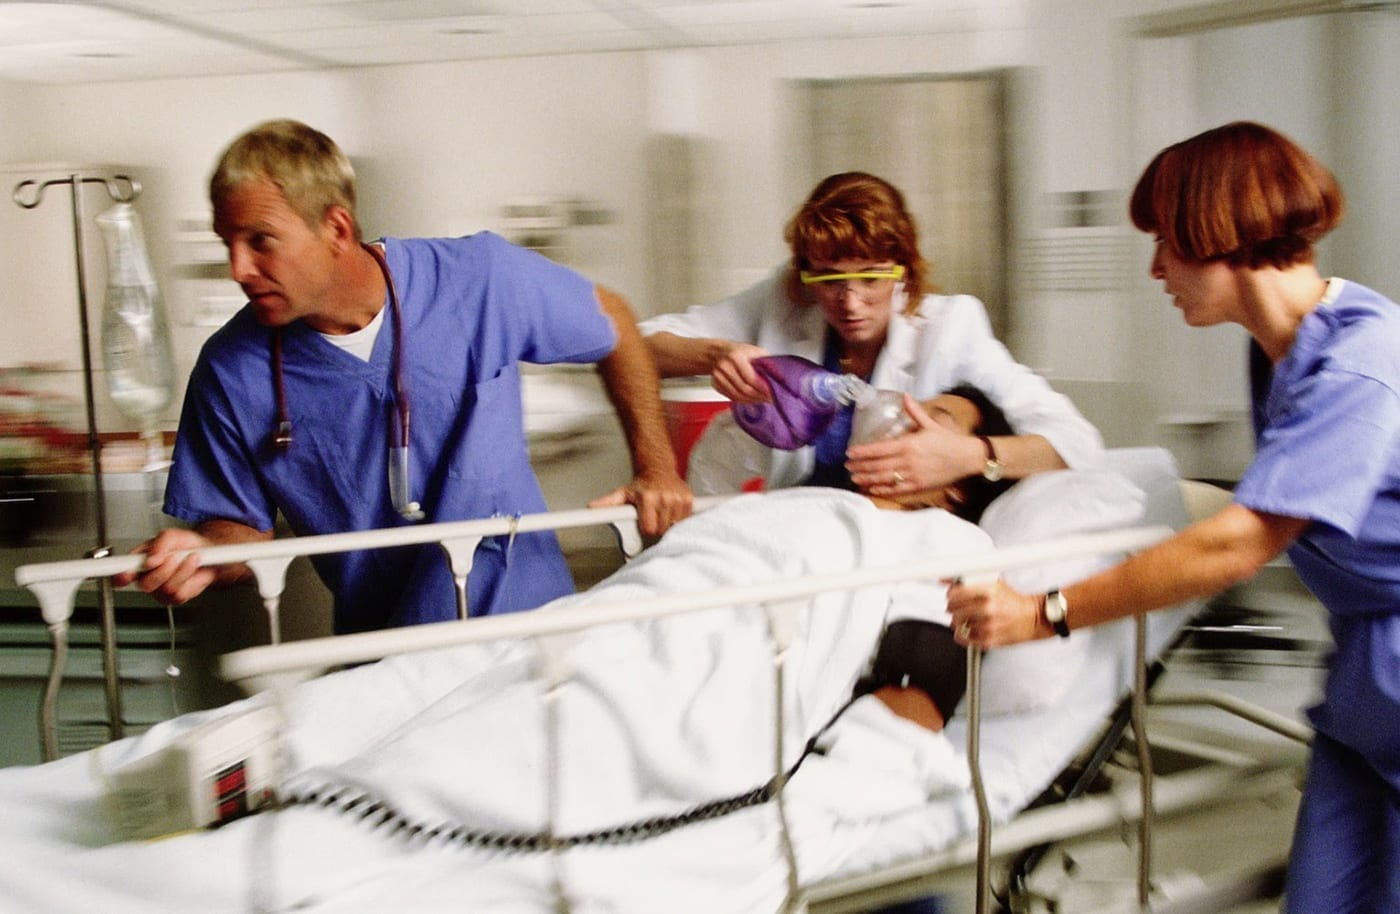 Health Insurance Tips for Emergency Room Visits - The Tennessee Tribune